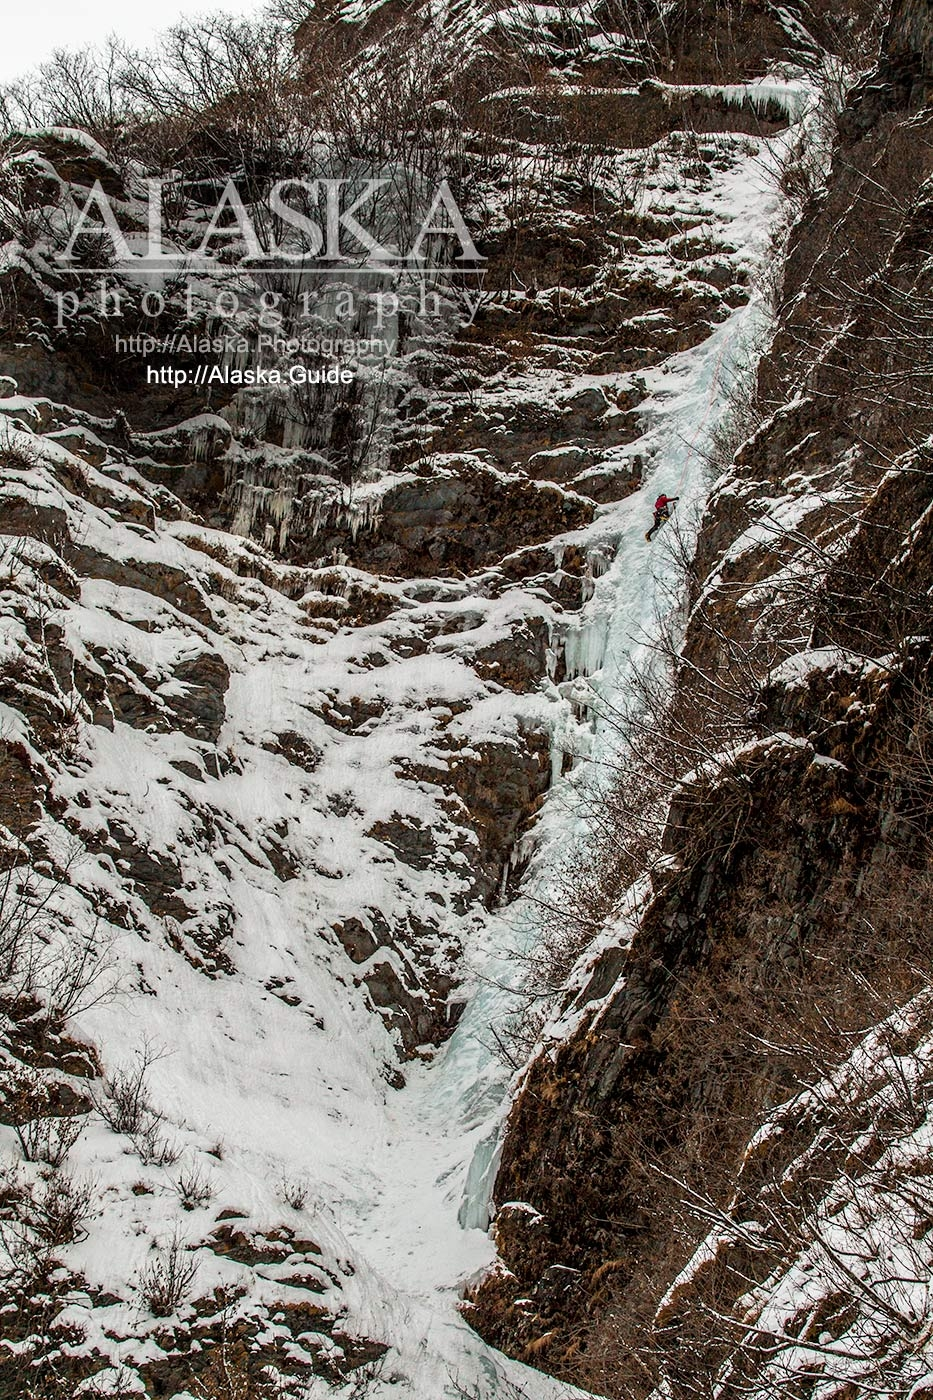 An ice climber works their way up Simple Twist of Fate during the 2016 Valdez Ice Climbing Festival.